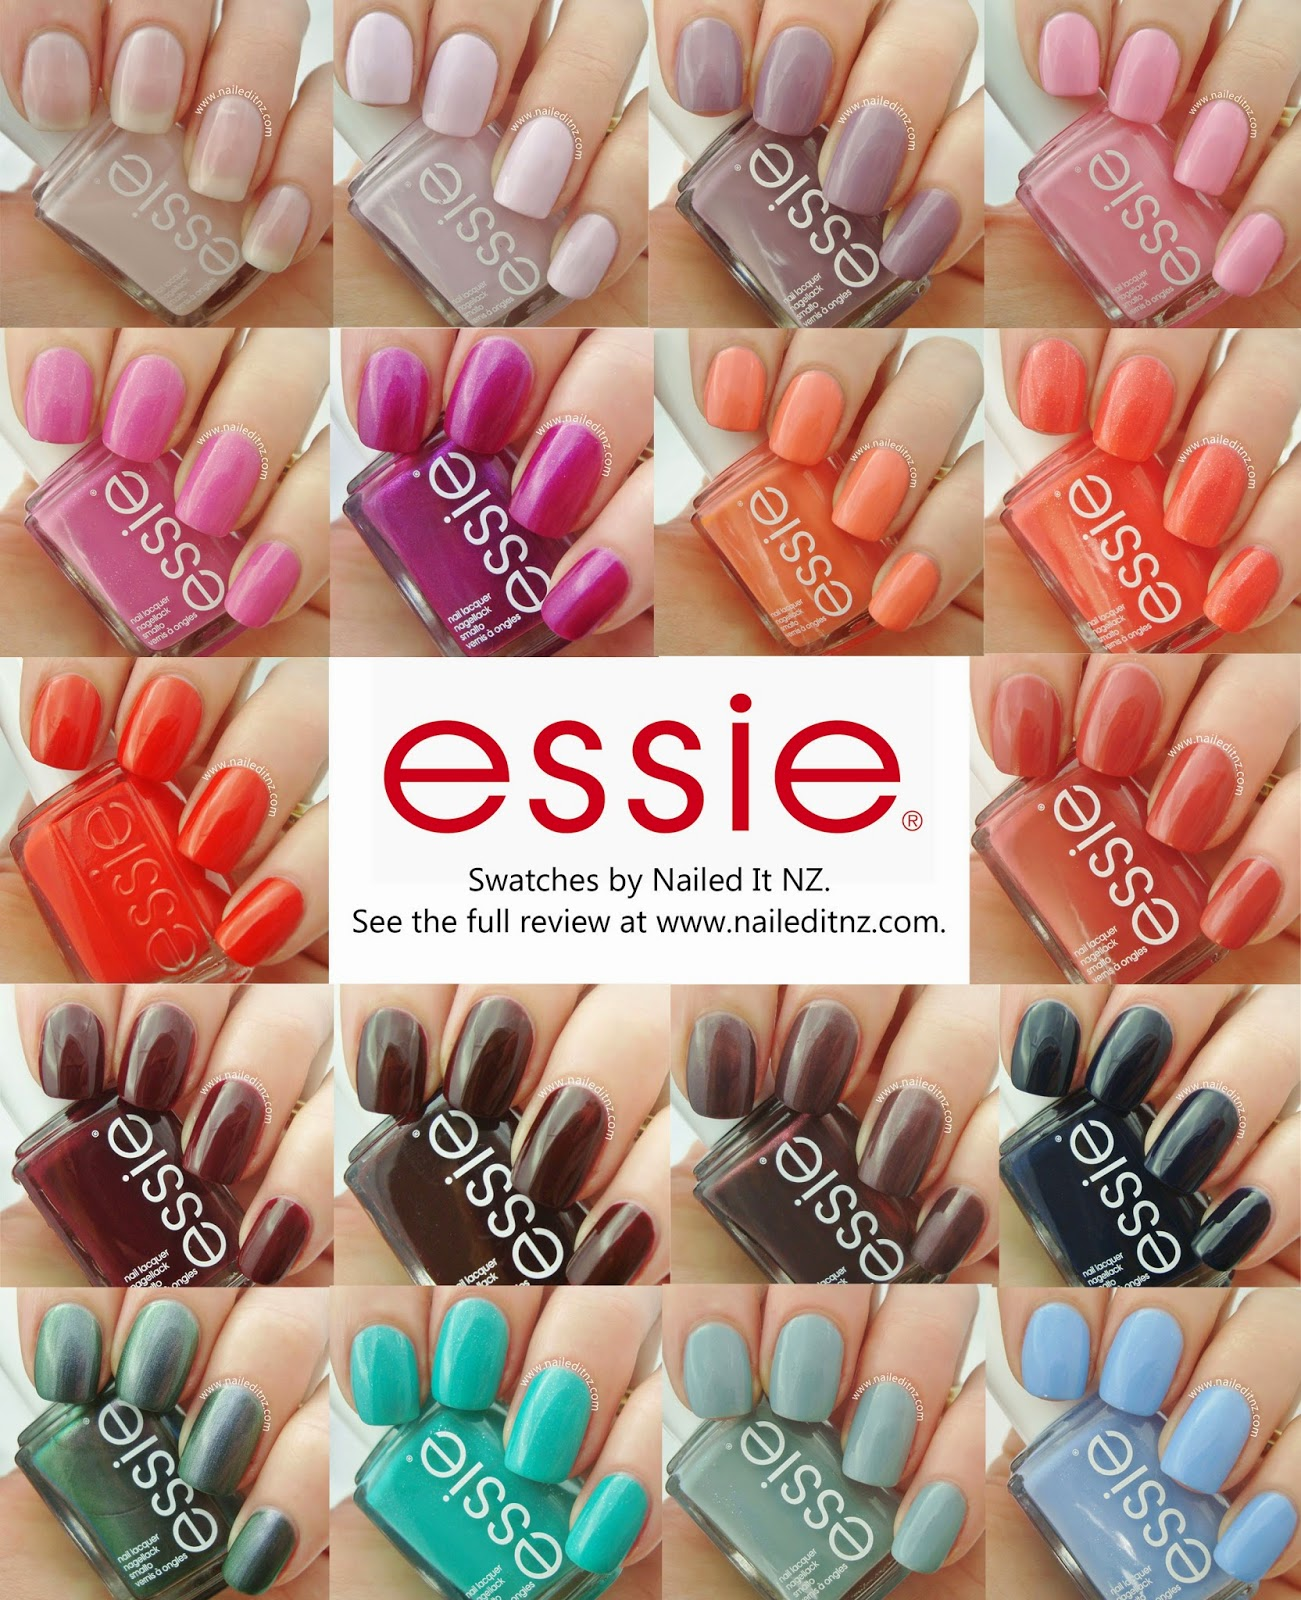 Essie Nail Varnish Swatches- HireAbility